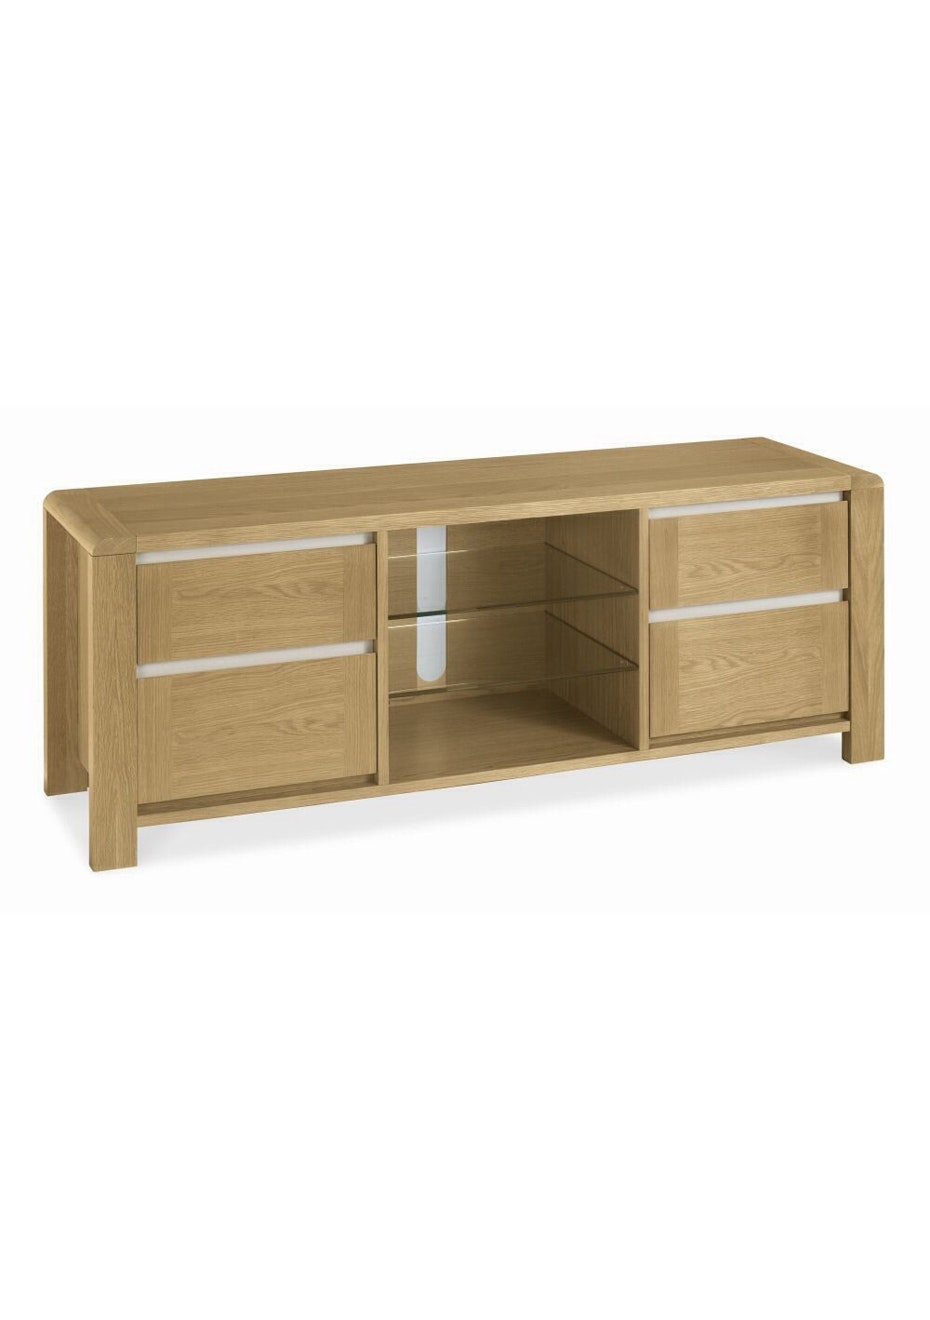 Furniture By Design - Casa Oak Entertainment Unit- Light Oak